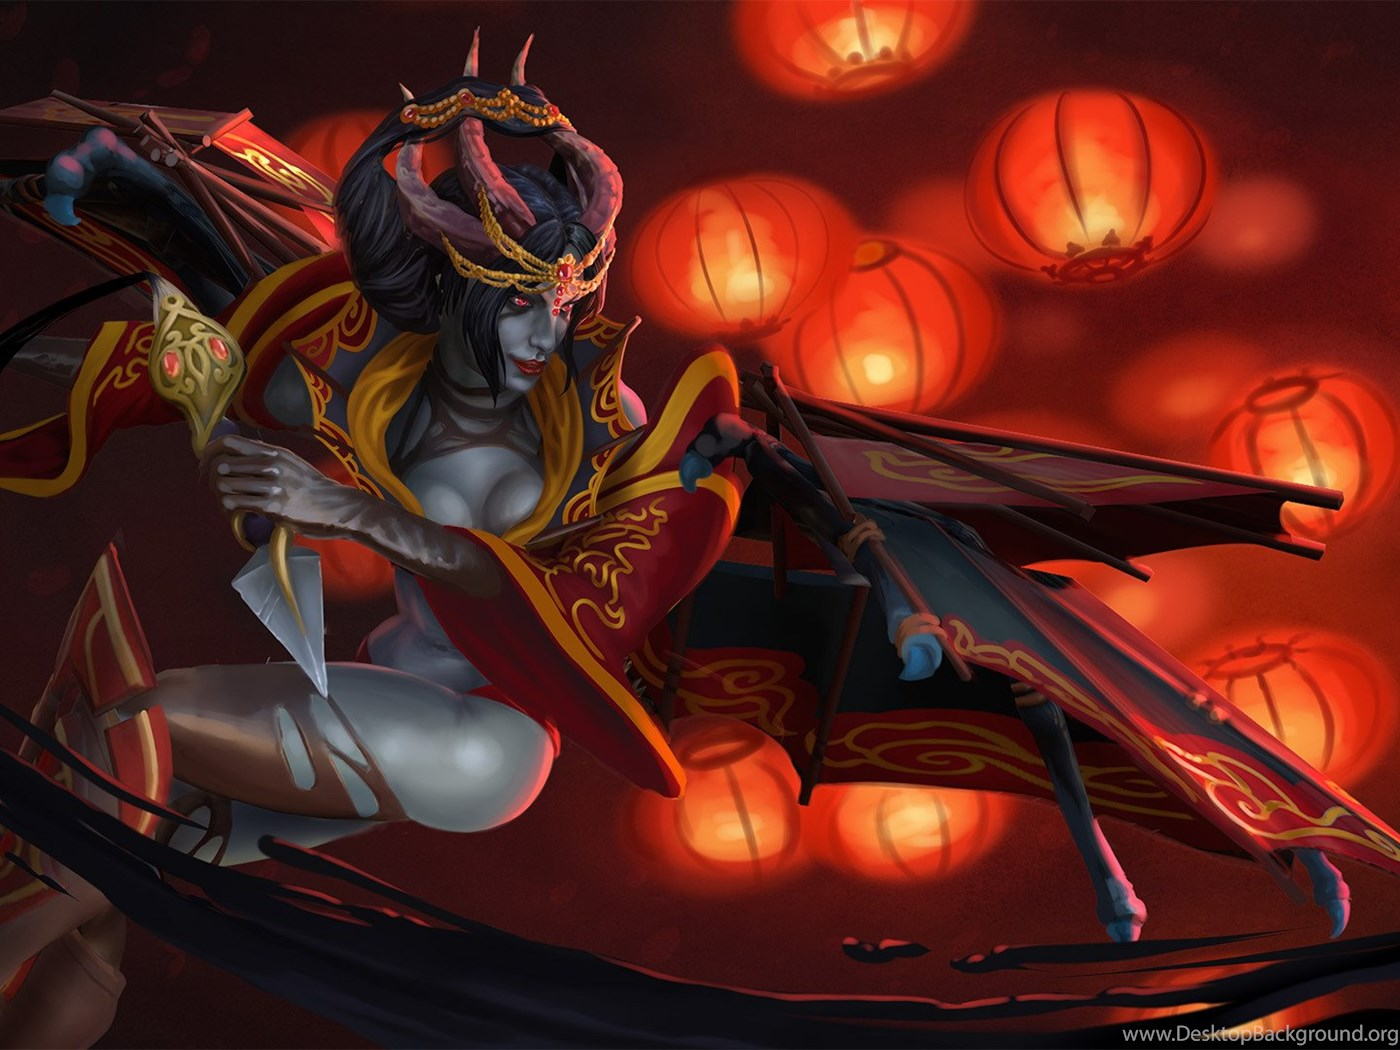 New Bloom Inspired Queen Of Pain Set With Hd Wallpapers Dota2